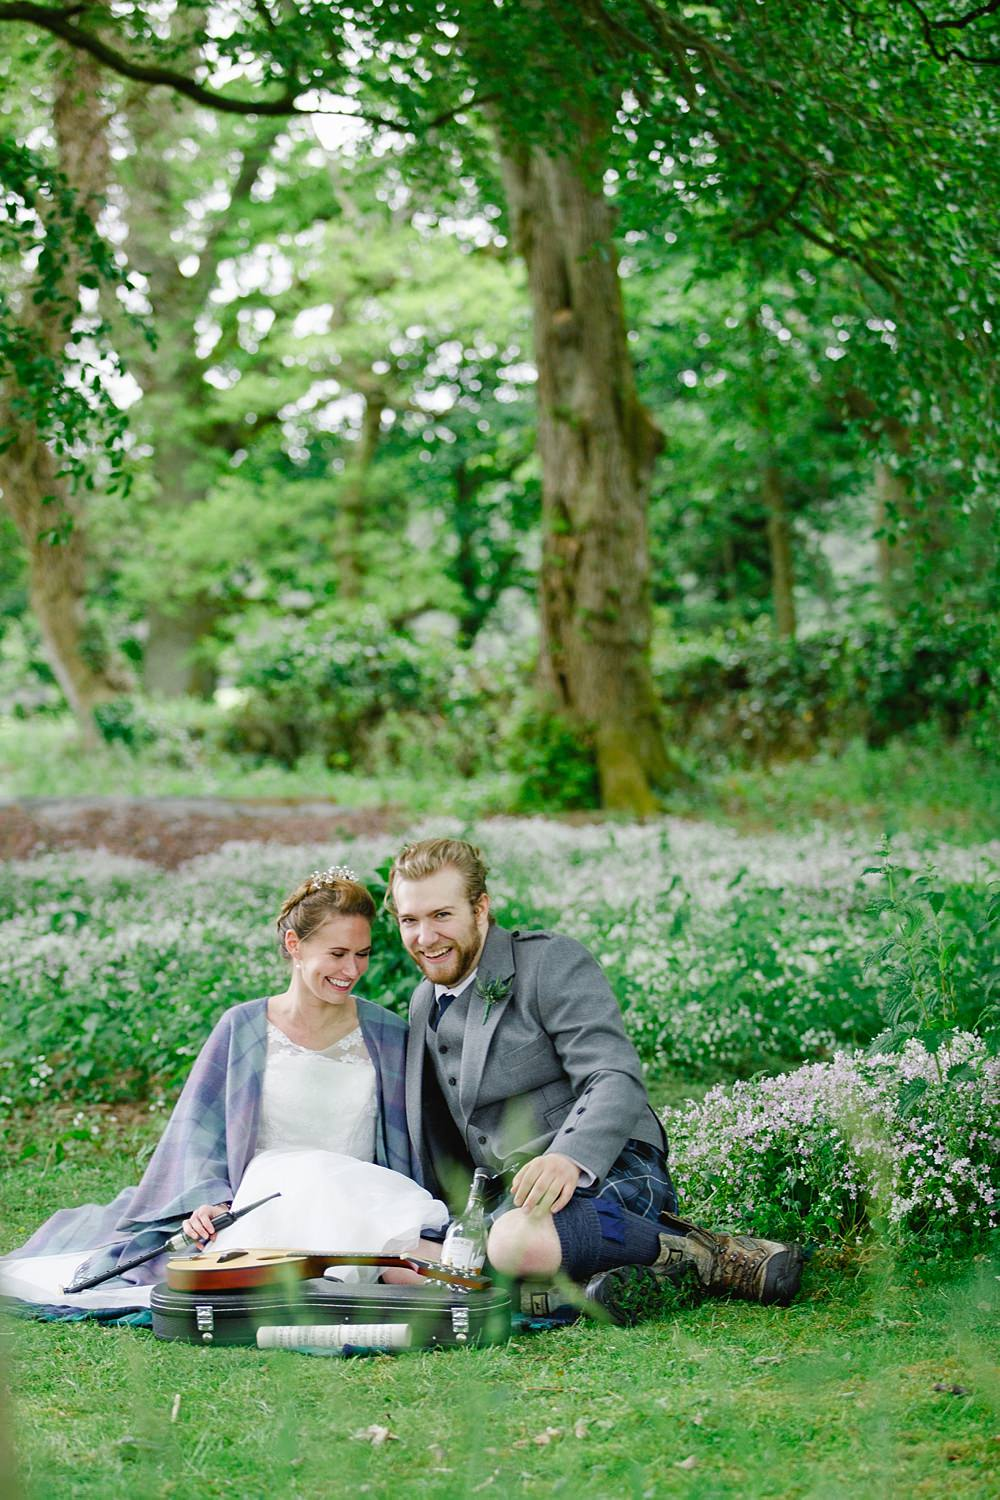 Fine Art Wedding Photographers,Glasgow wedding,The Gibsons,natural wedding photographers Glasgow,romantic photographers Scotland,wedding photographers glasgow,